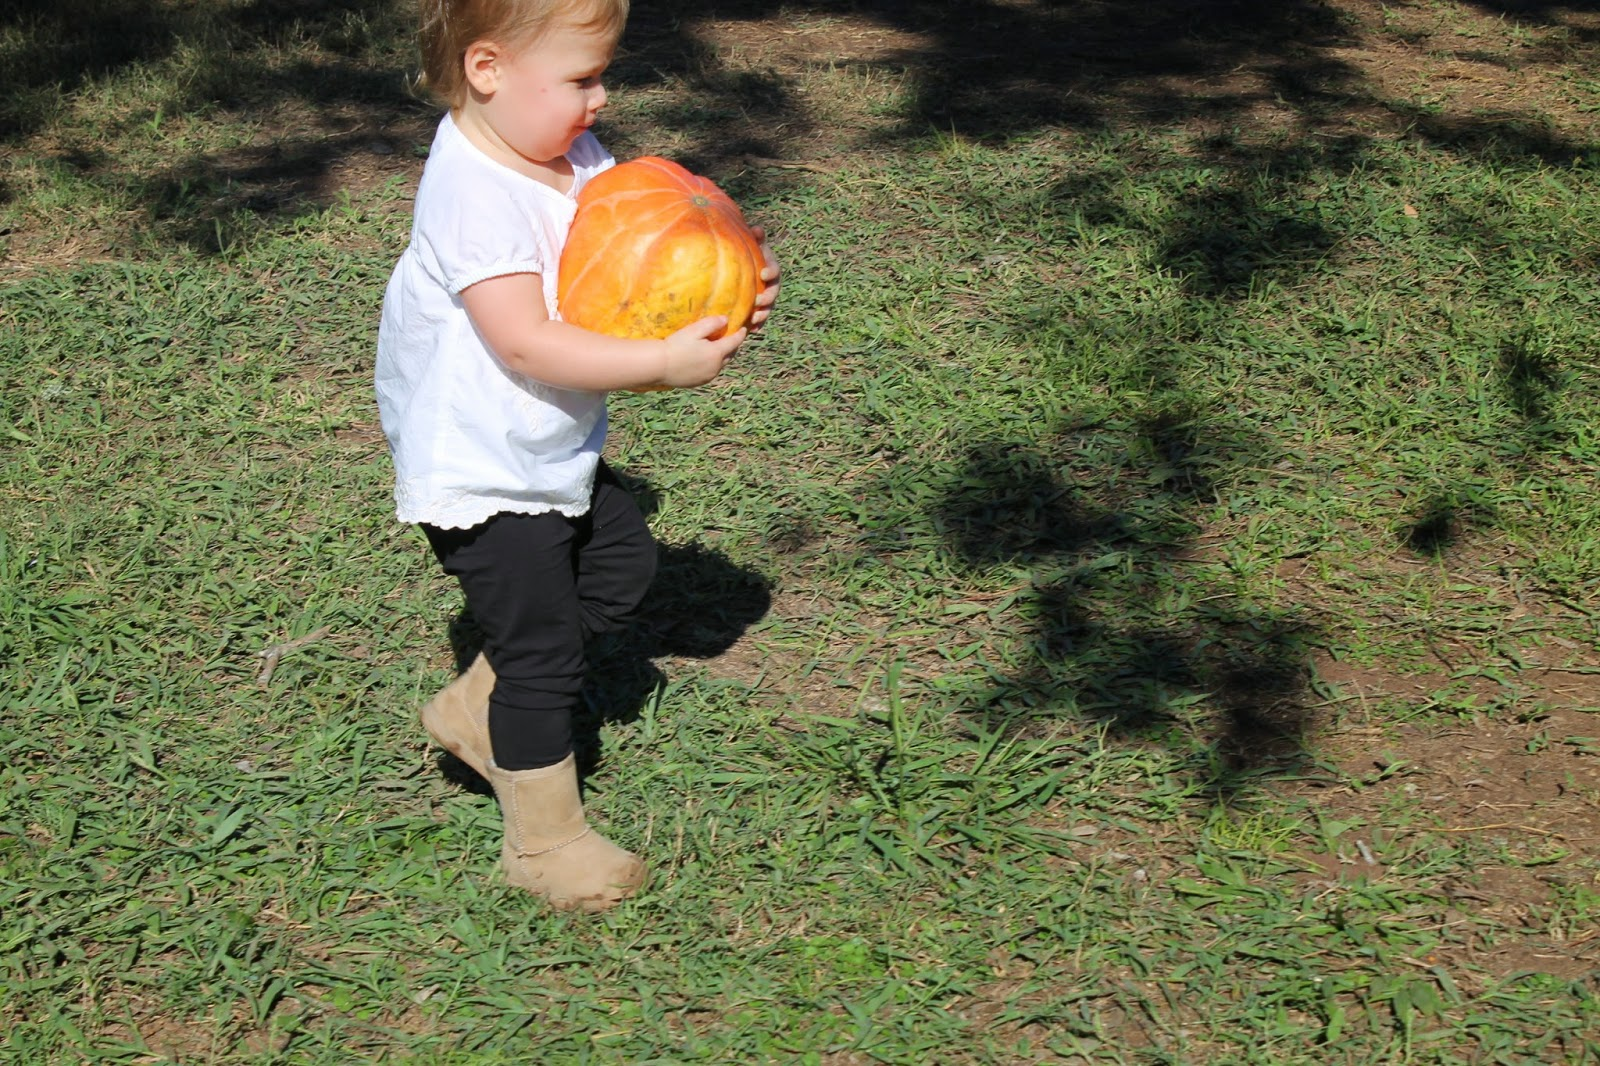 Anabelle carrying pumpkin | Bubbles and Gold (www.bubblesandgold.com)